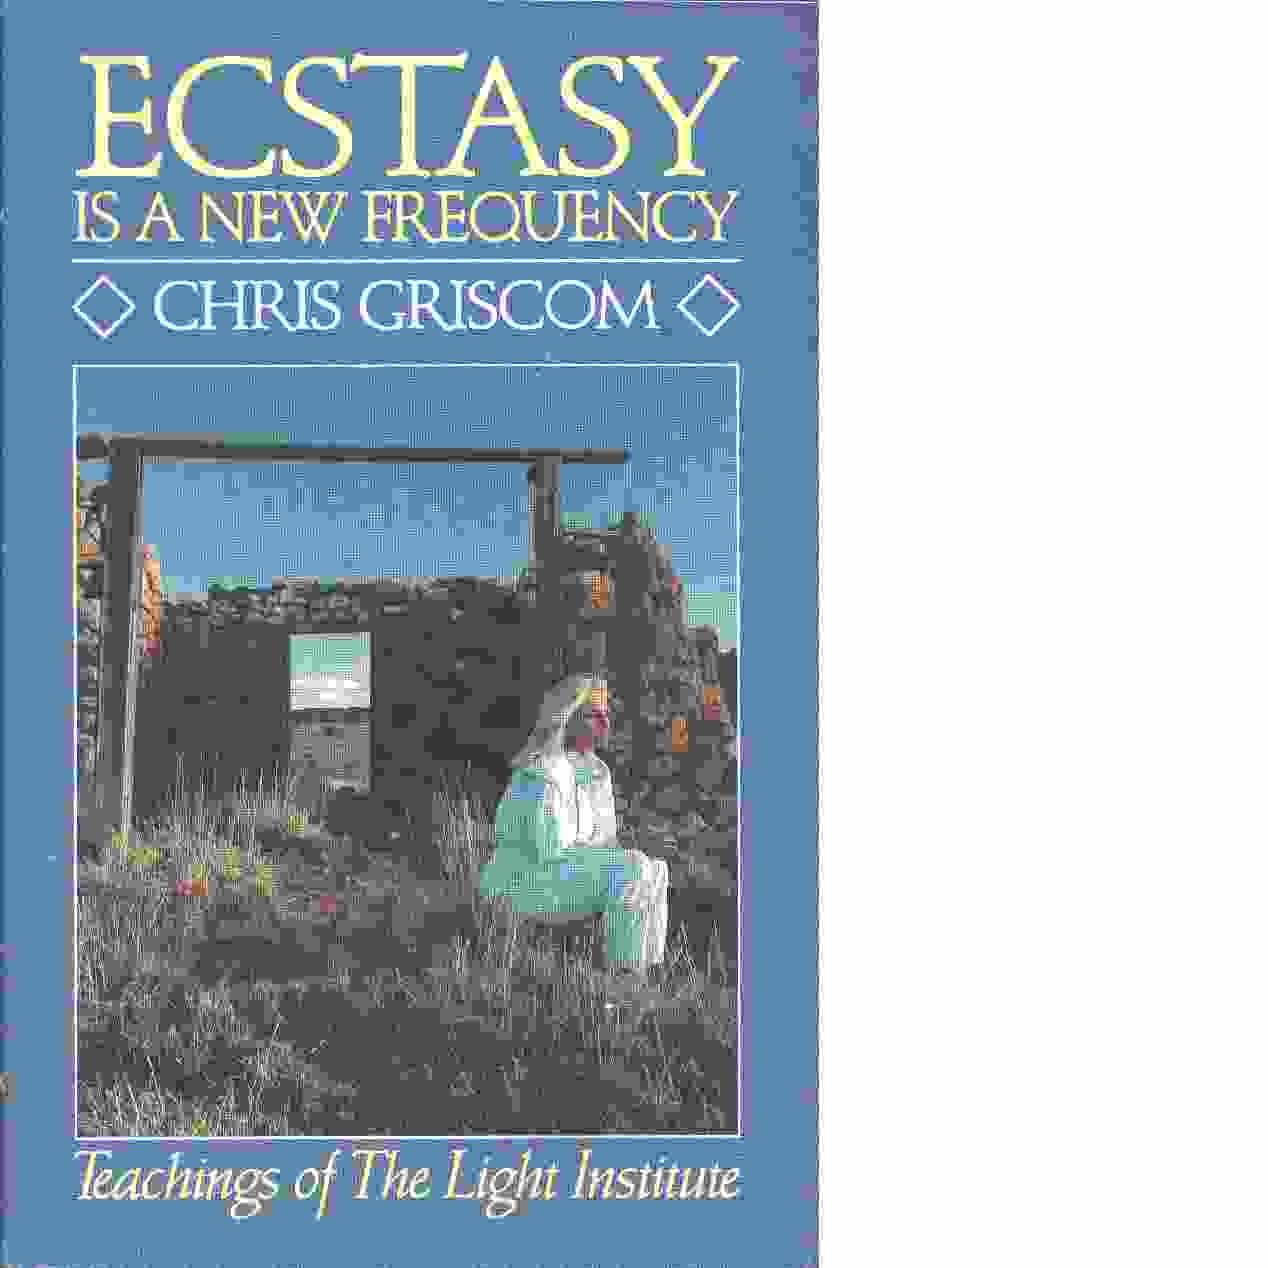 Ecstasy Is a New Frequency: Teachings of the Light Institute - Griscom, Chris